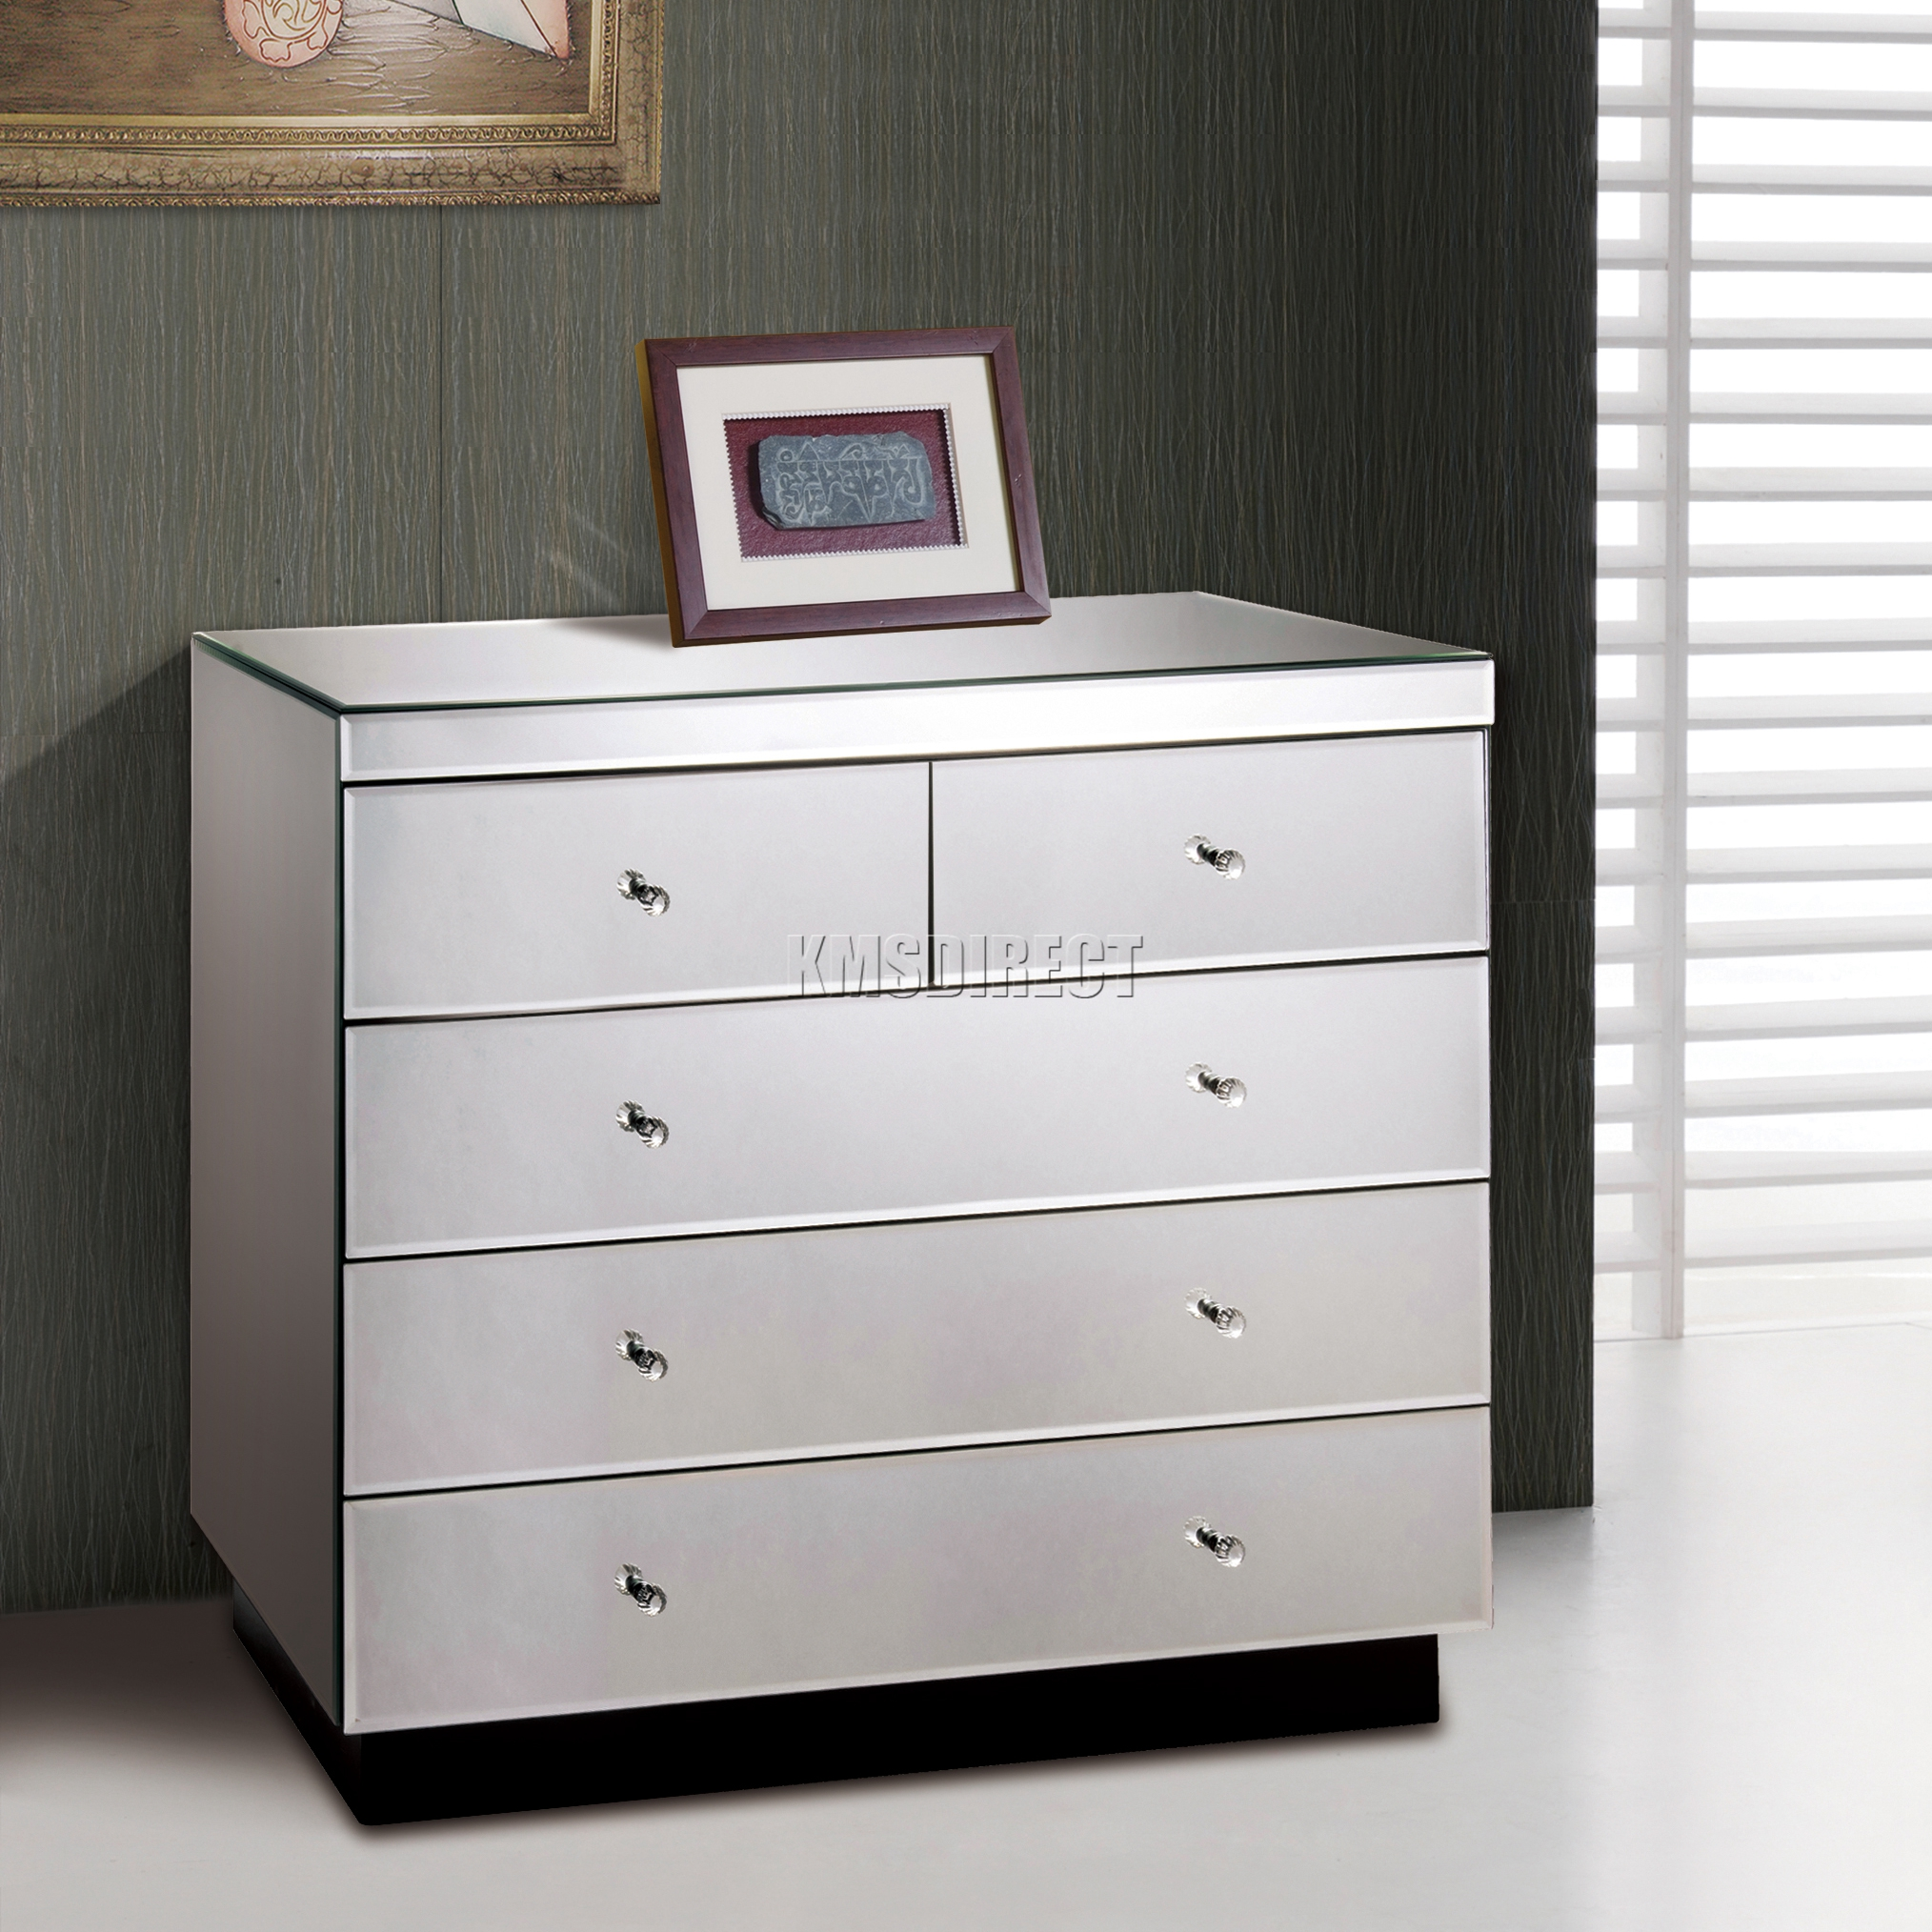 Mirrored Side Tables Bedroom Foxhunter Mirrored Furniture Glass With Drawer Chest Cabinet Table